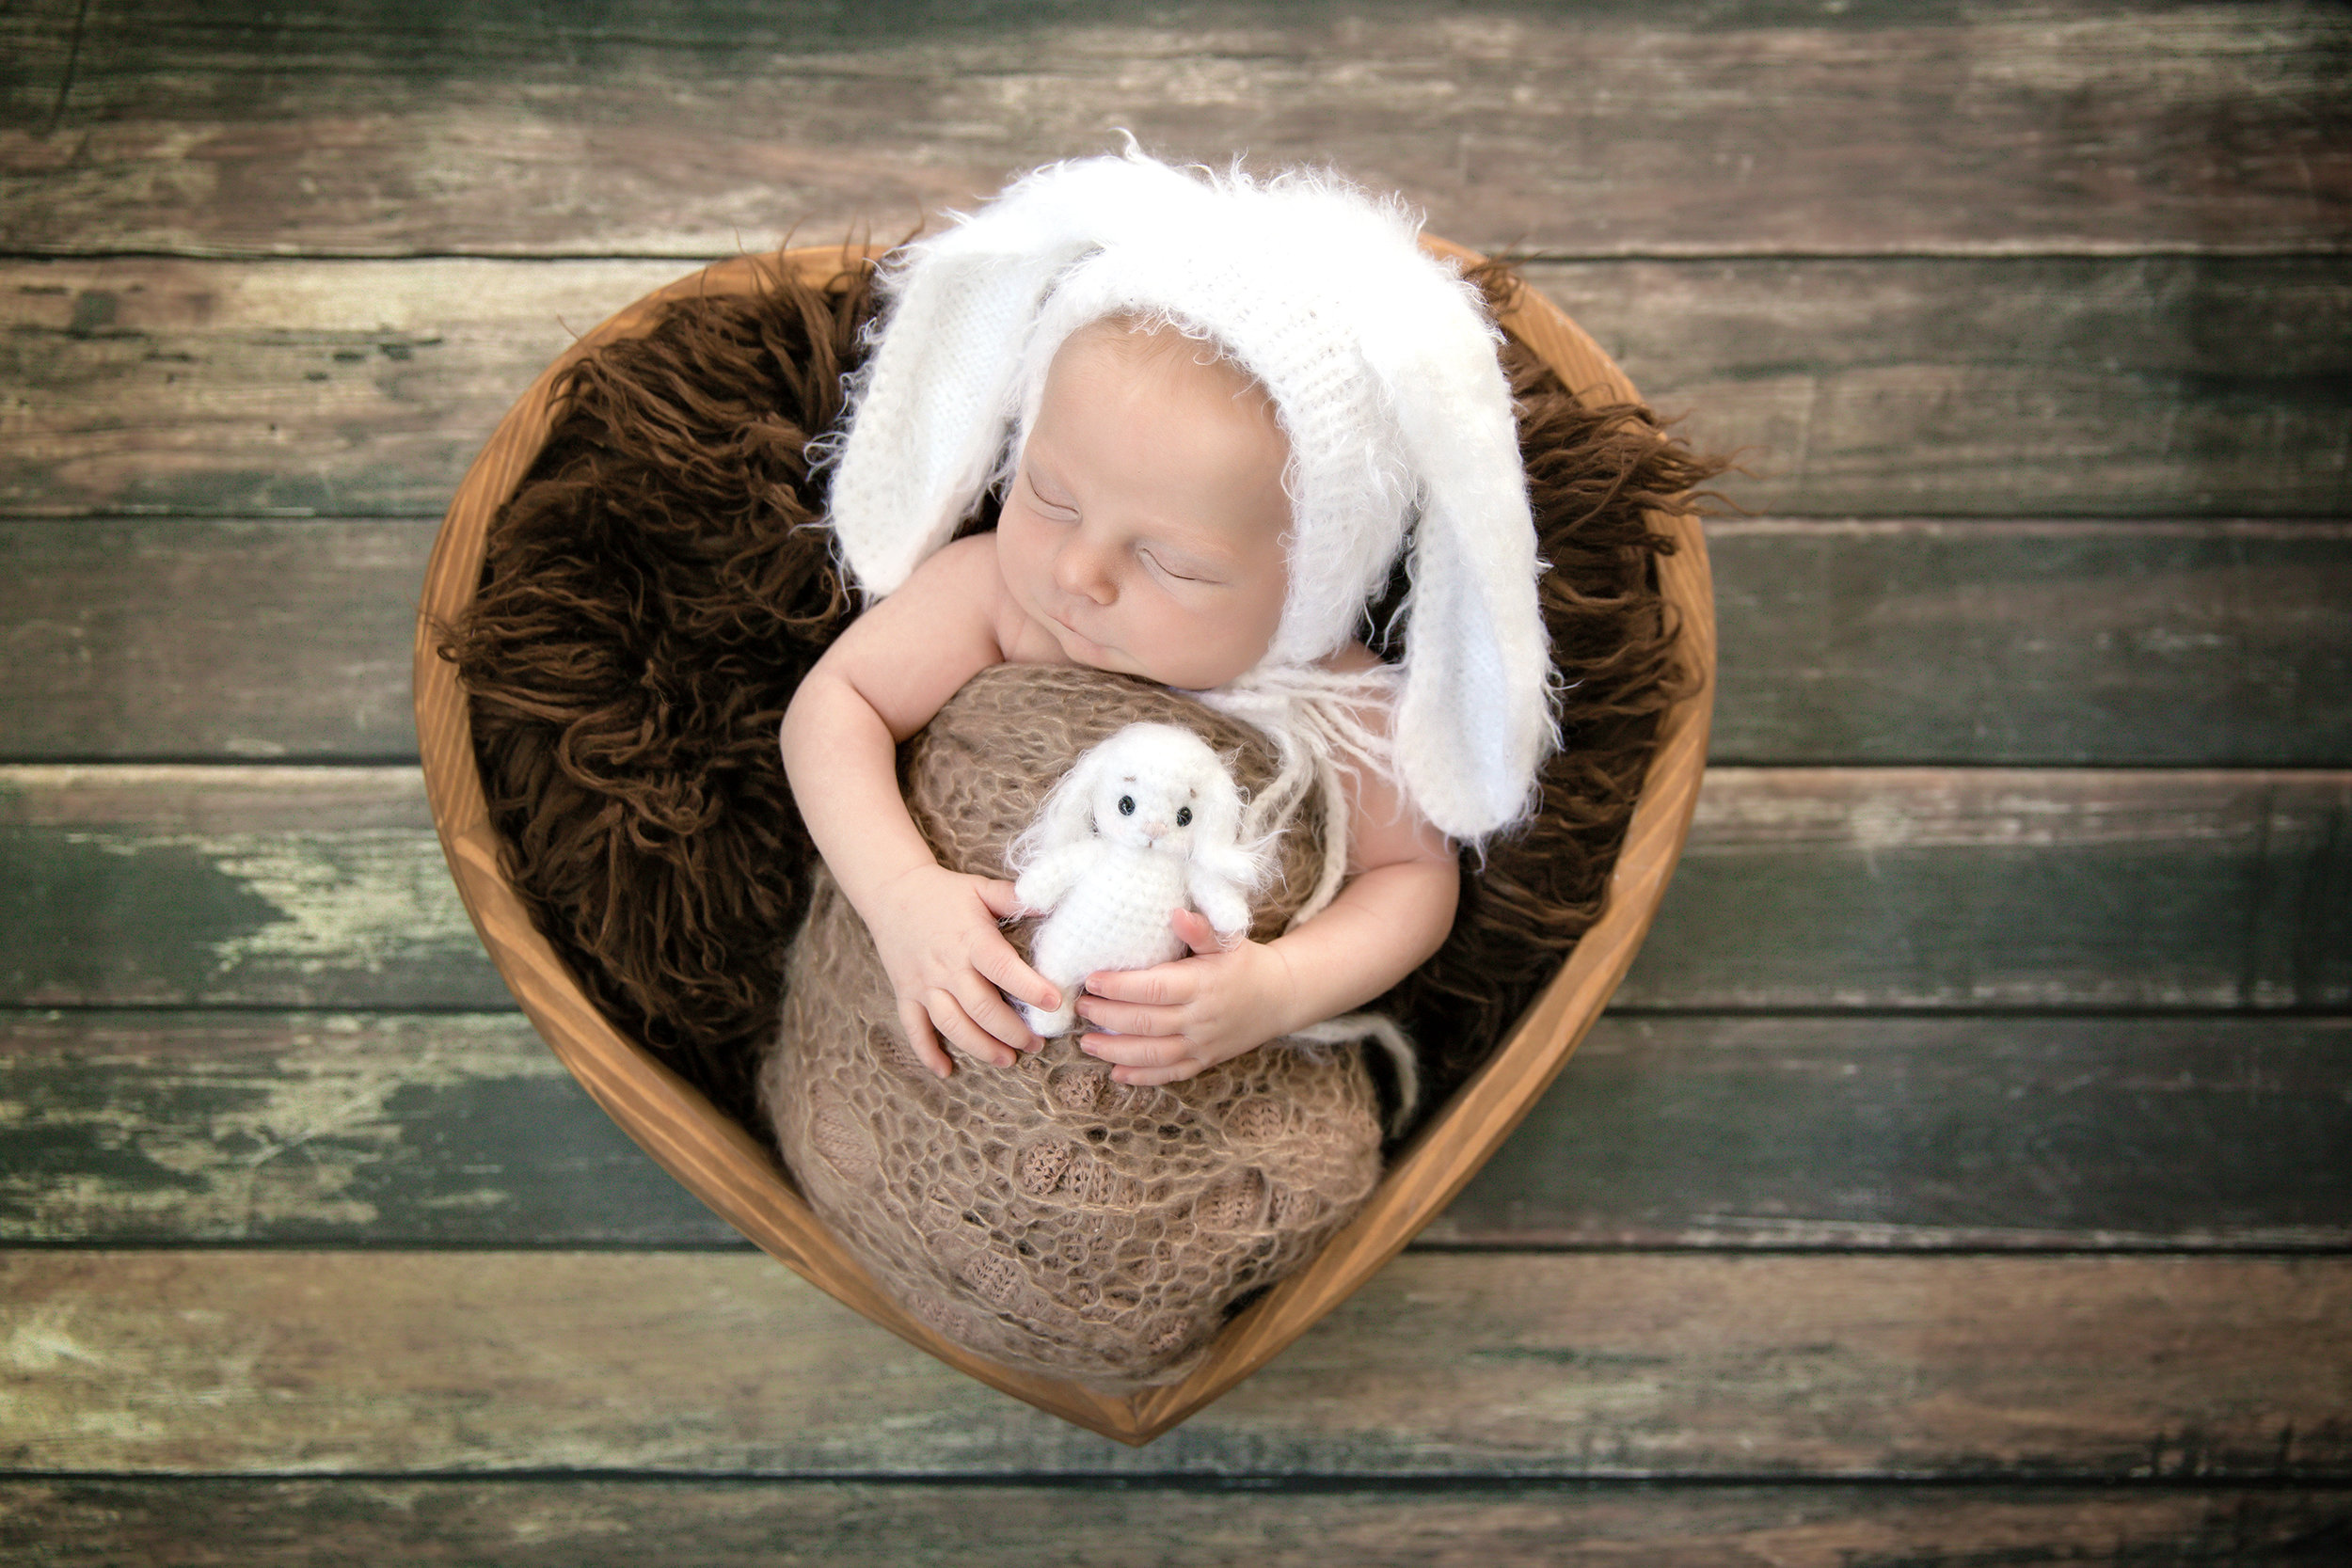 Baby boy is wearing a bunny hat and is holding a bunny toy posed in a heart bowl. Newborn photography by Milashka Photography. Calgary and Airdrie, Alberta photographer